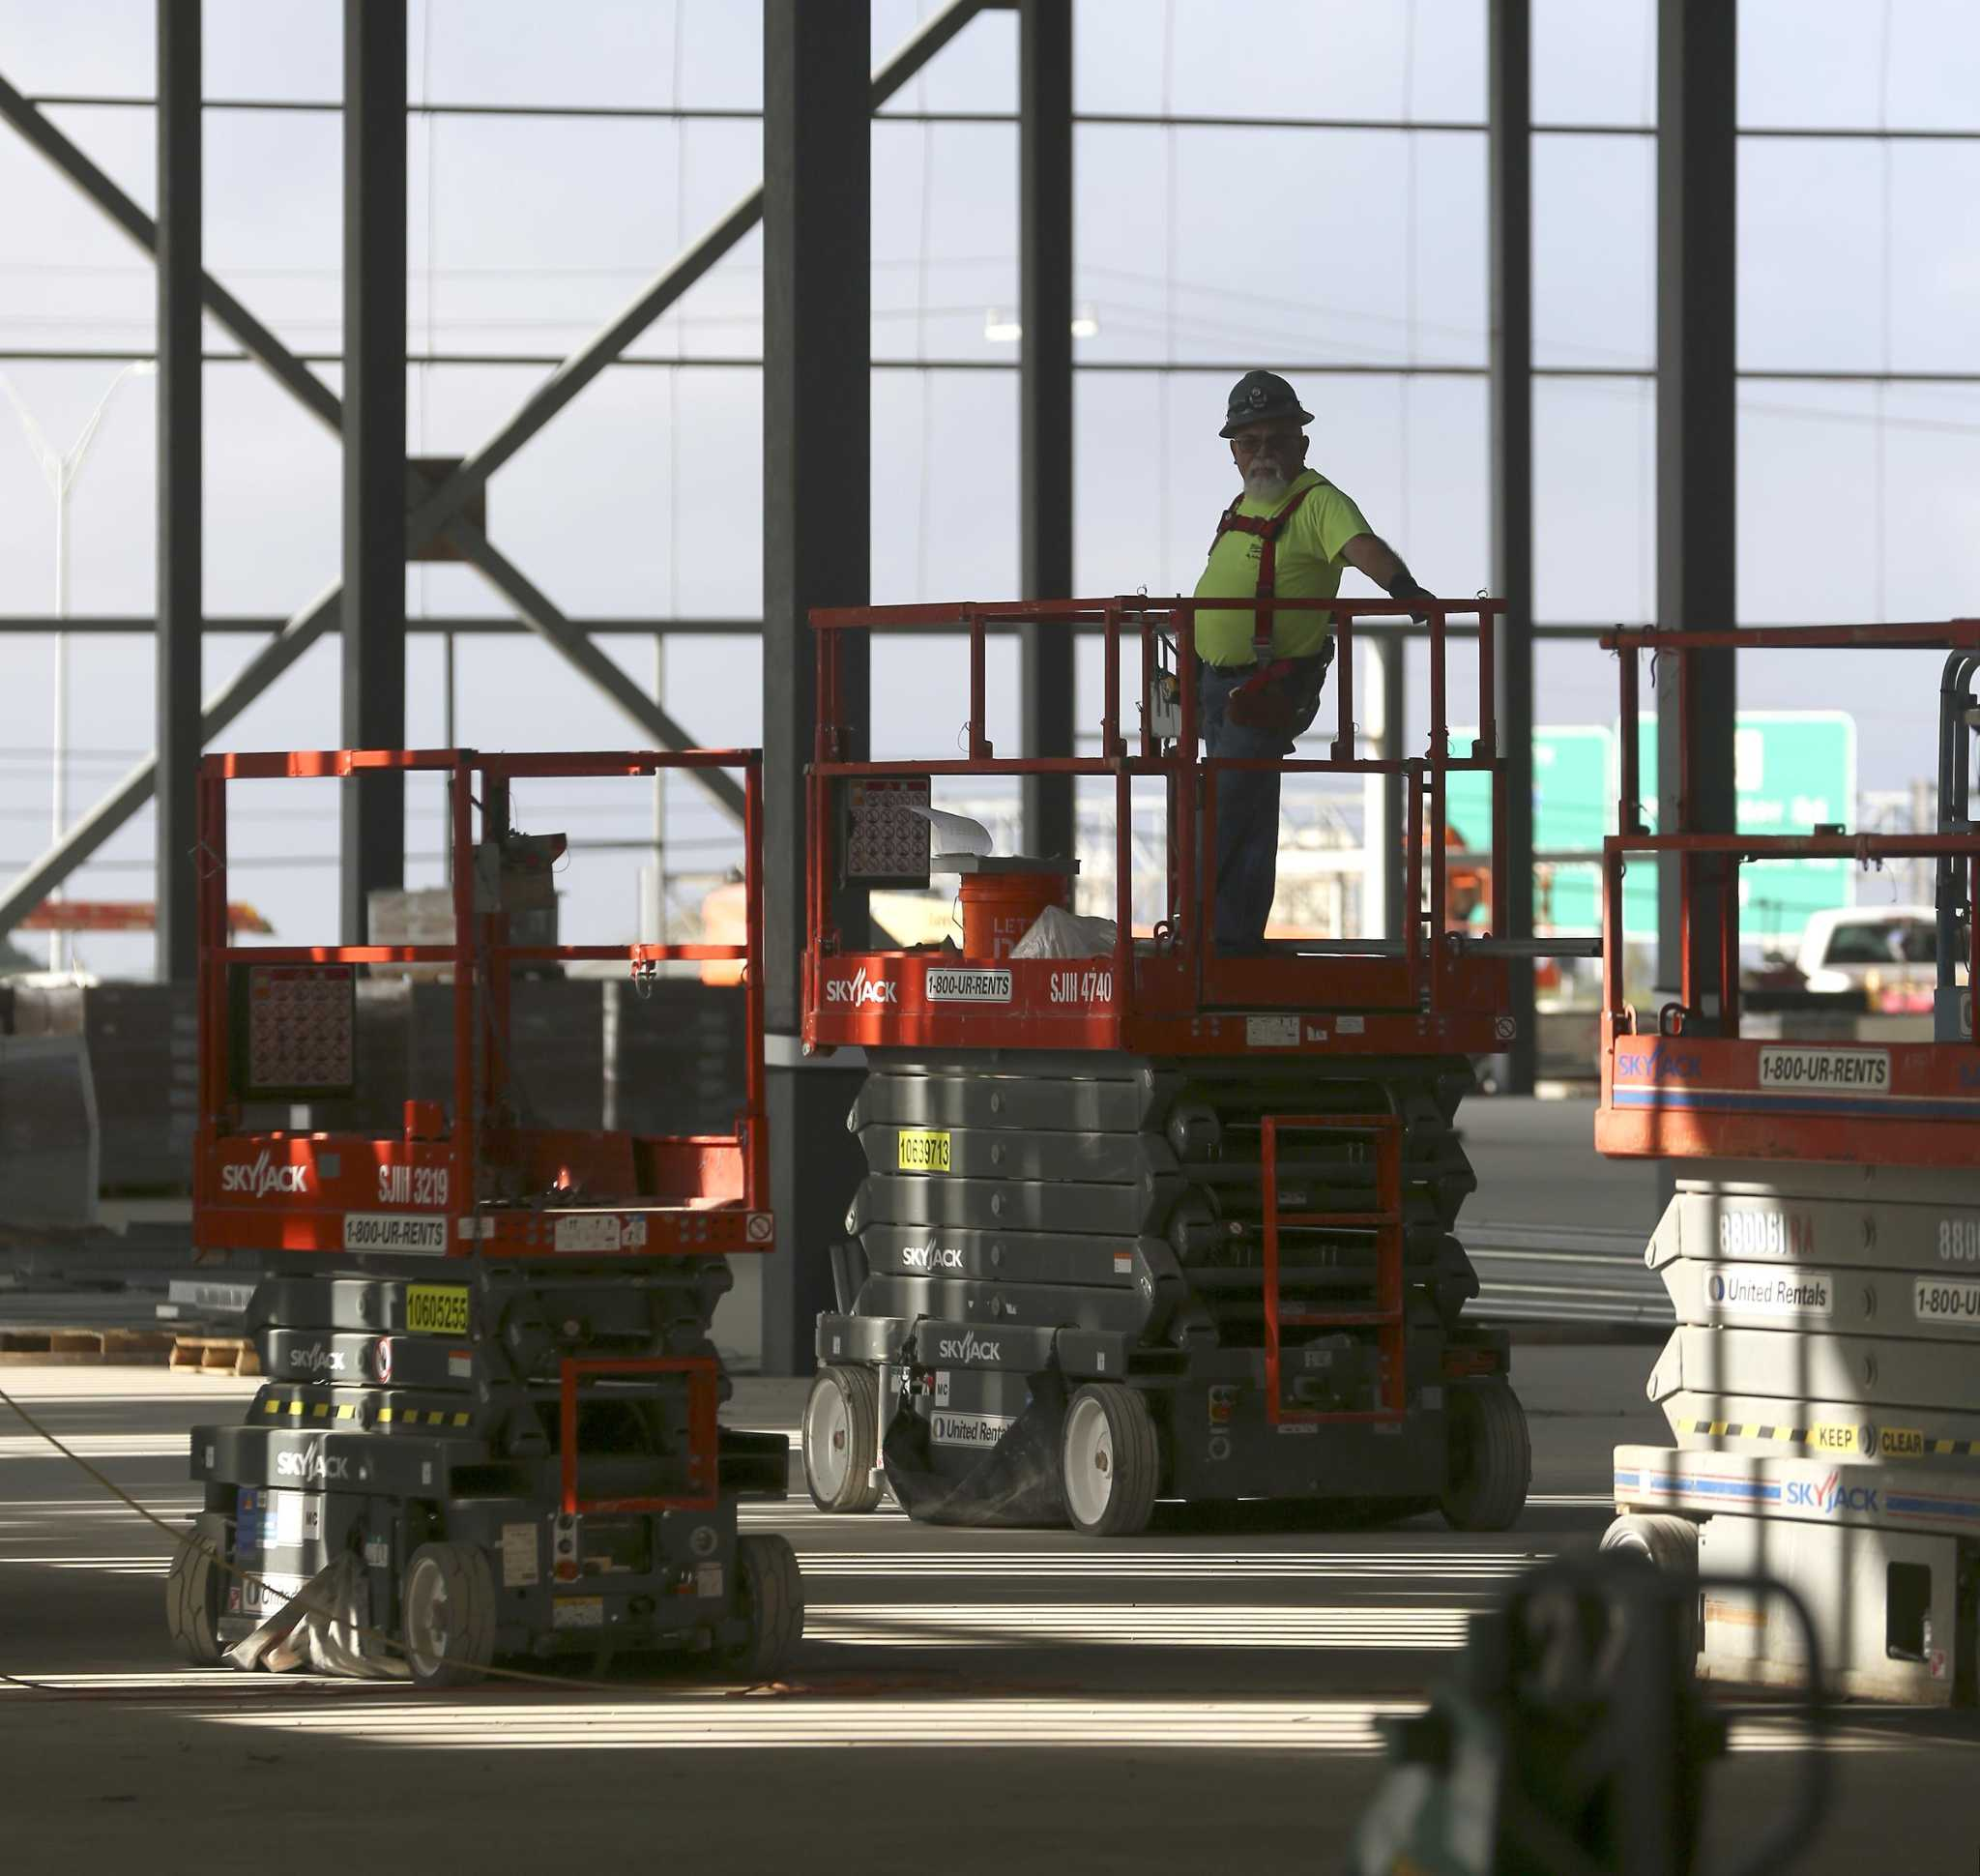 San Antonio Struggled To Add Jobs In 2018 And 2019 Isn T Looking Any Better